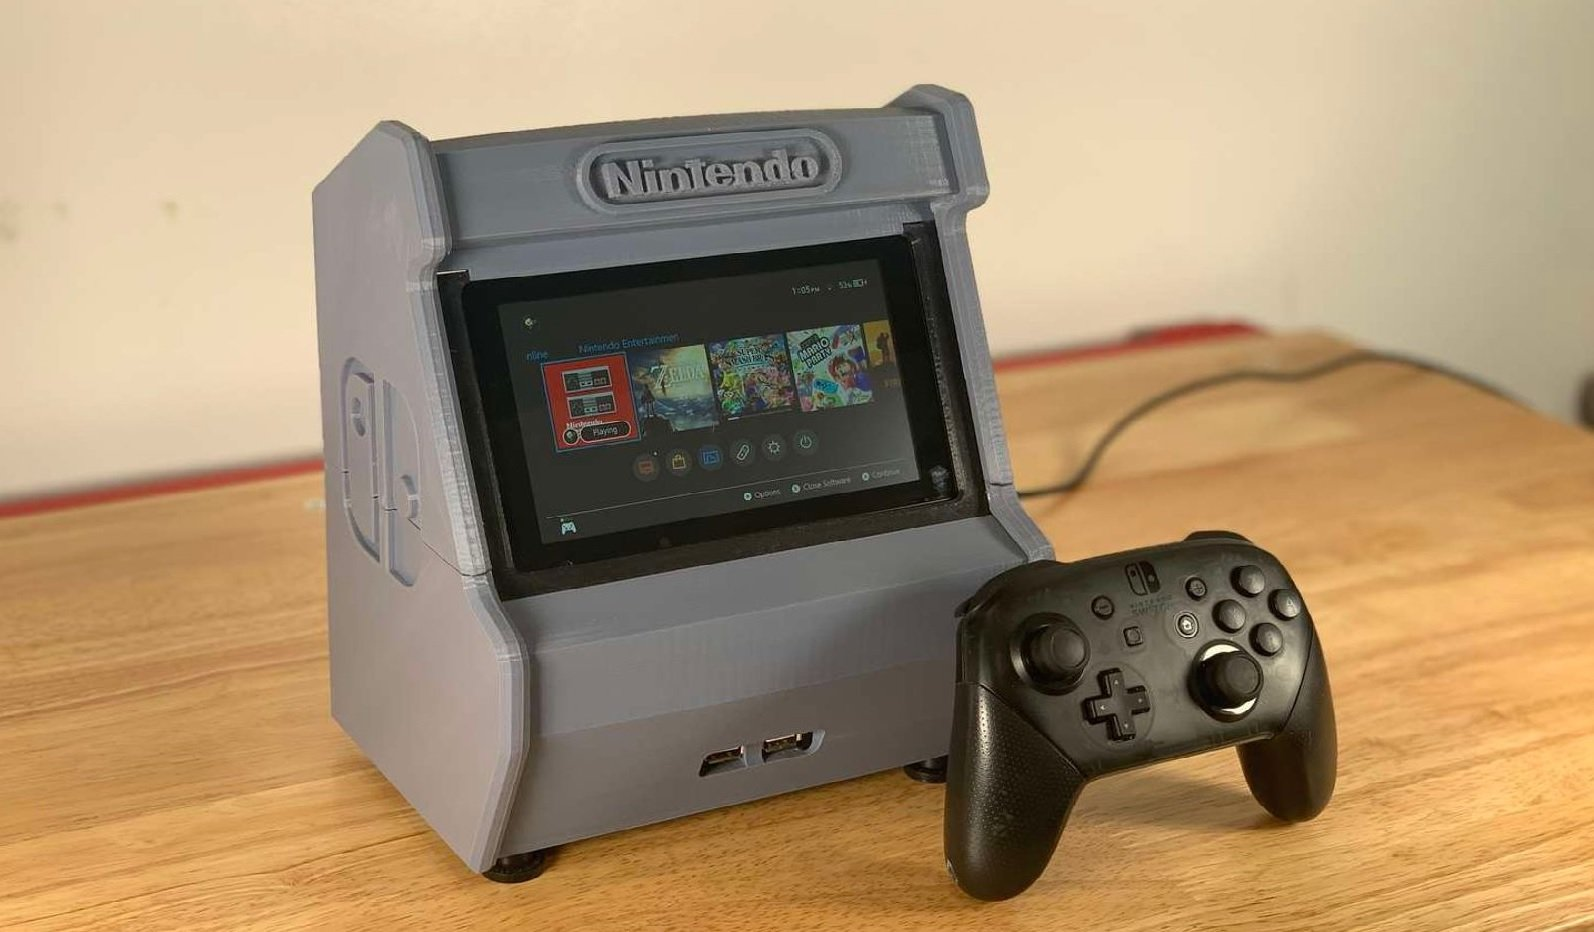 [Project] 3D Print Your Own Nintendo Switch Arcade Cabinet | All3DP